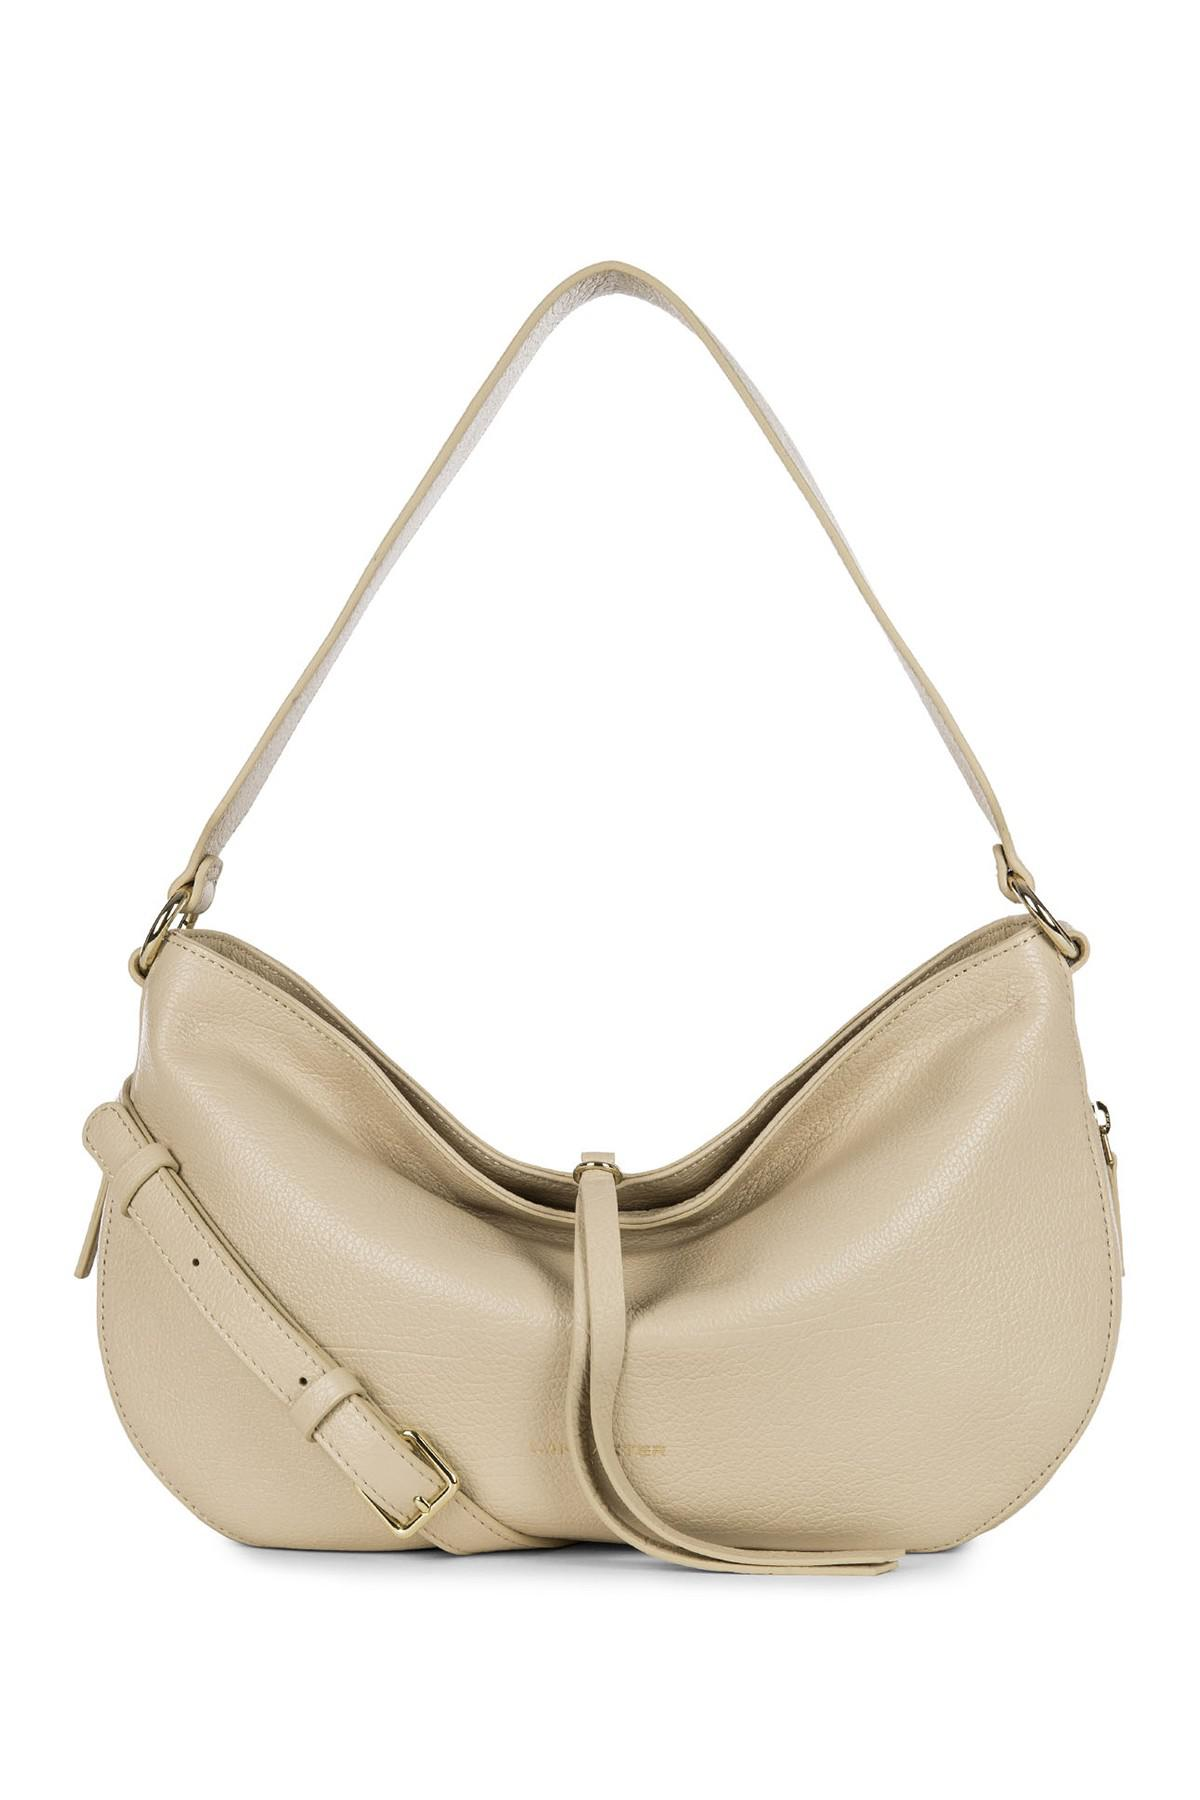 4b15f366710e Lyst - Lancaster Paris Dune Leather Hobo Crossbody in Natural